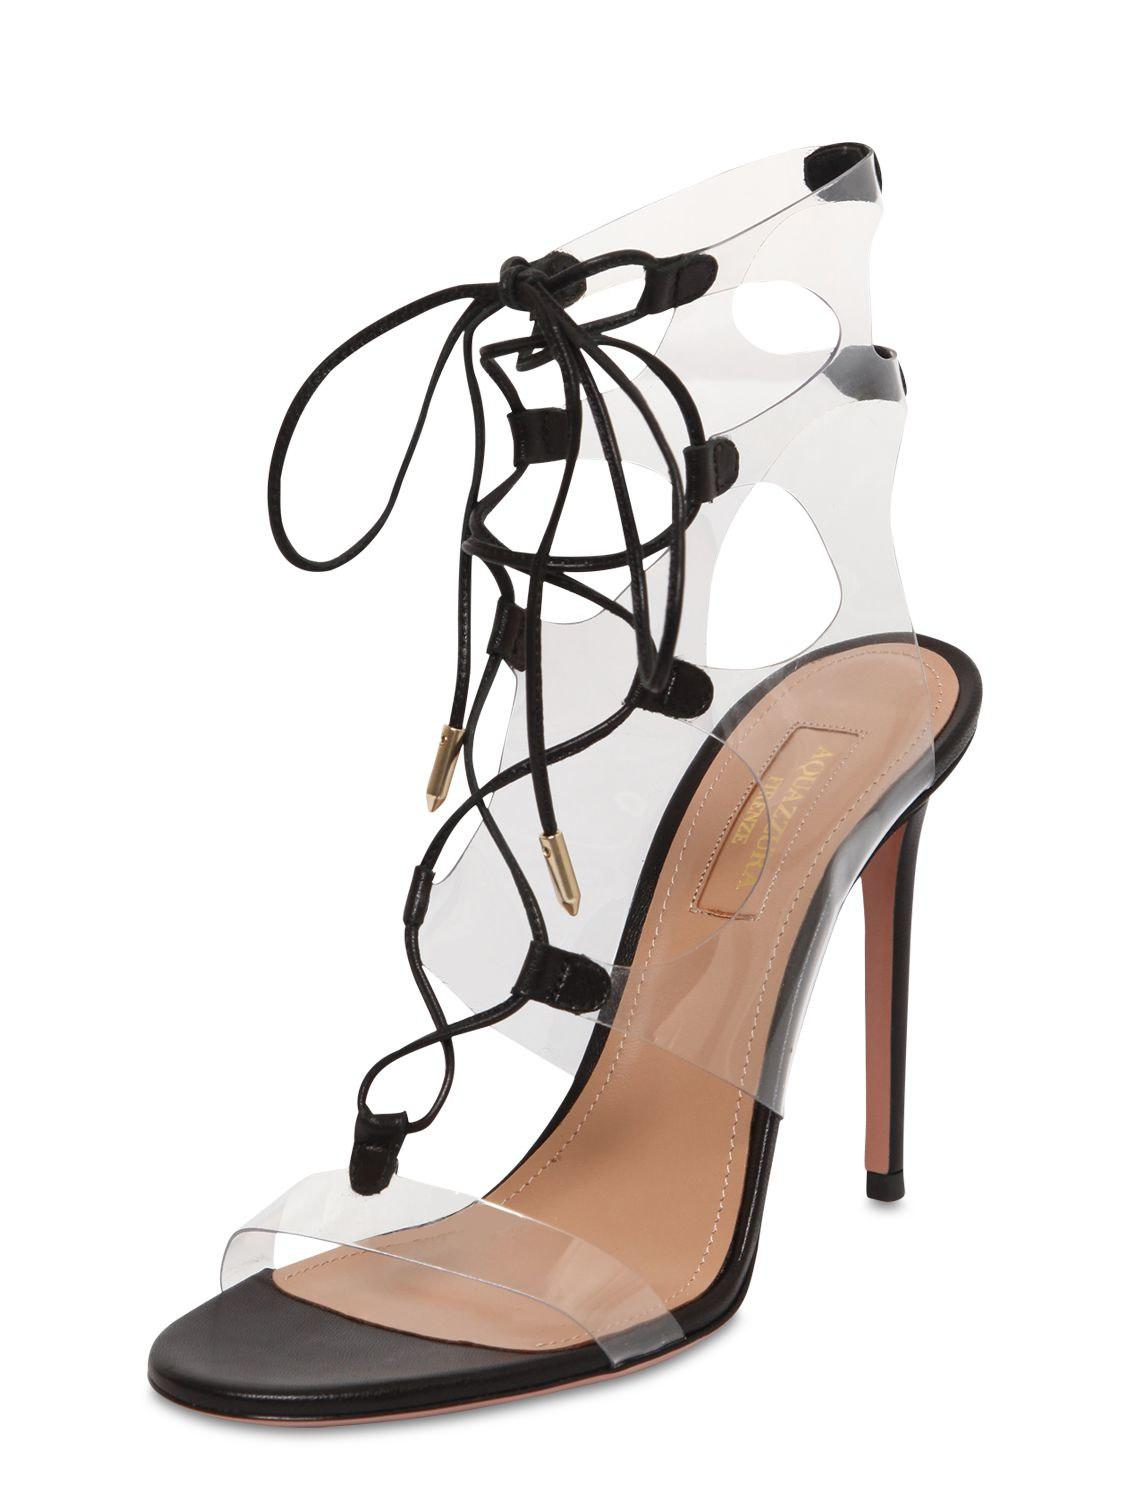 d0385ac5aa6 Lyst - Aquazzura 105mm Milos Leather   Plexi Sandals in Black